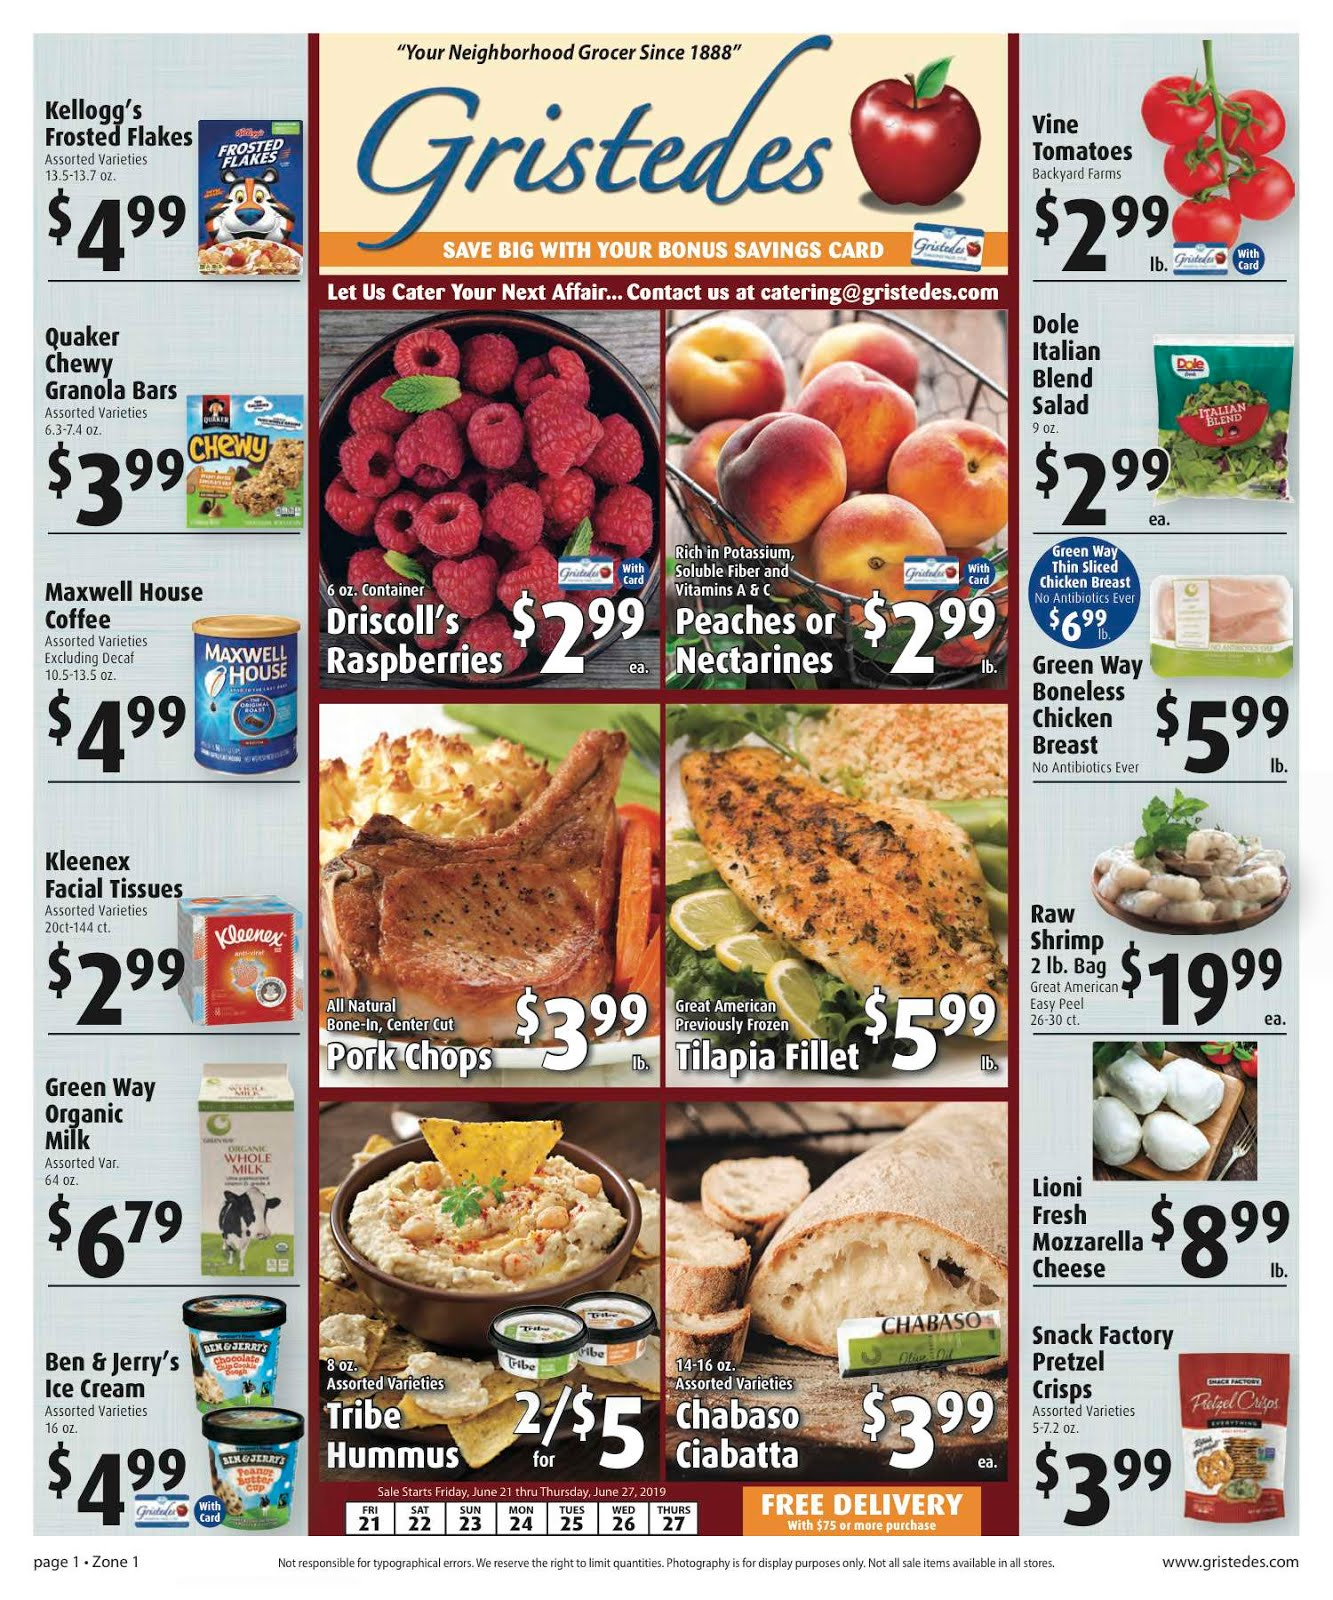 CHECK OUT ROOSEVELT ISLAND GRISTEDES Products, Sales & Specials For June 21 - June 27